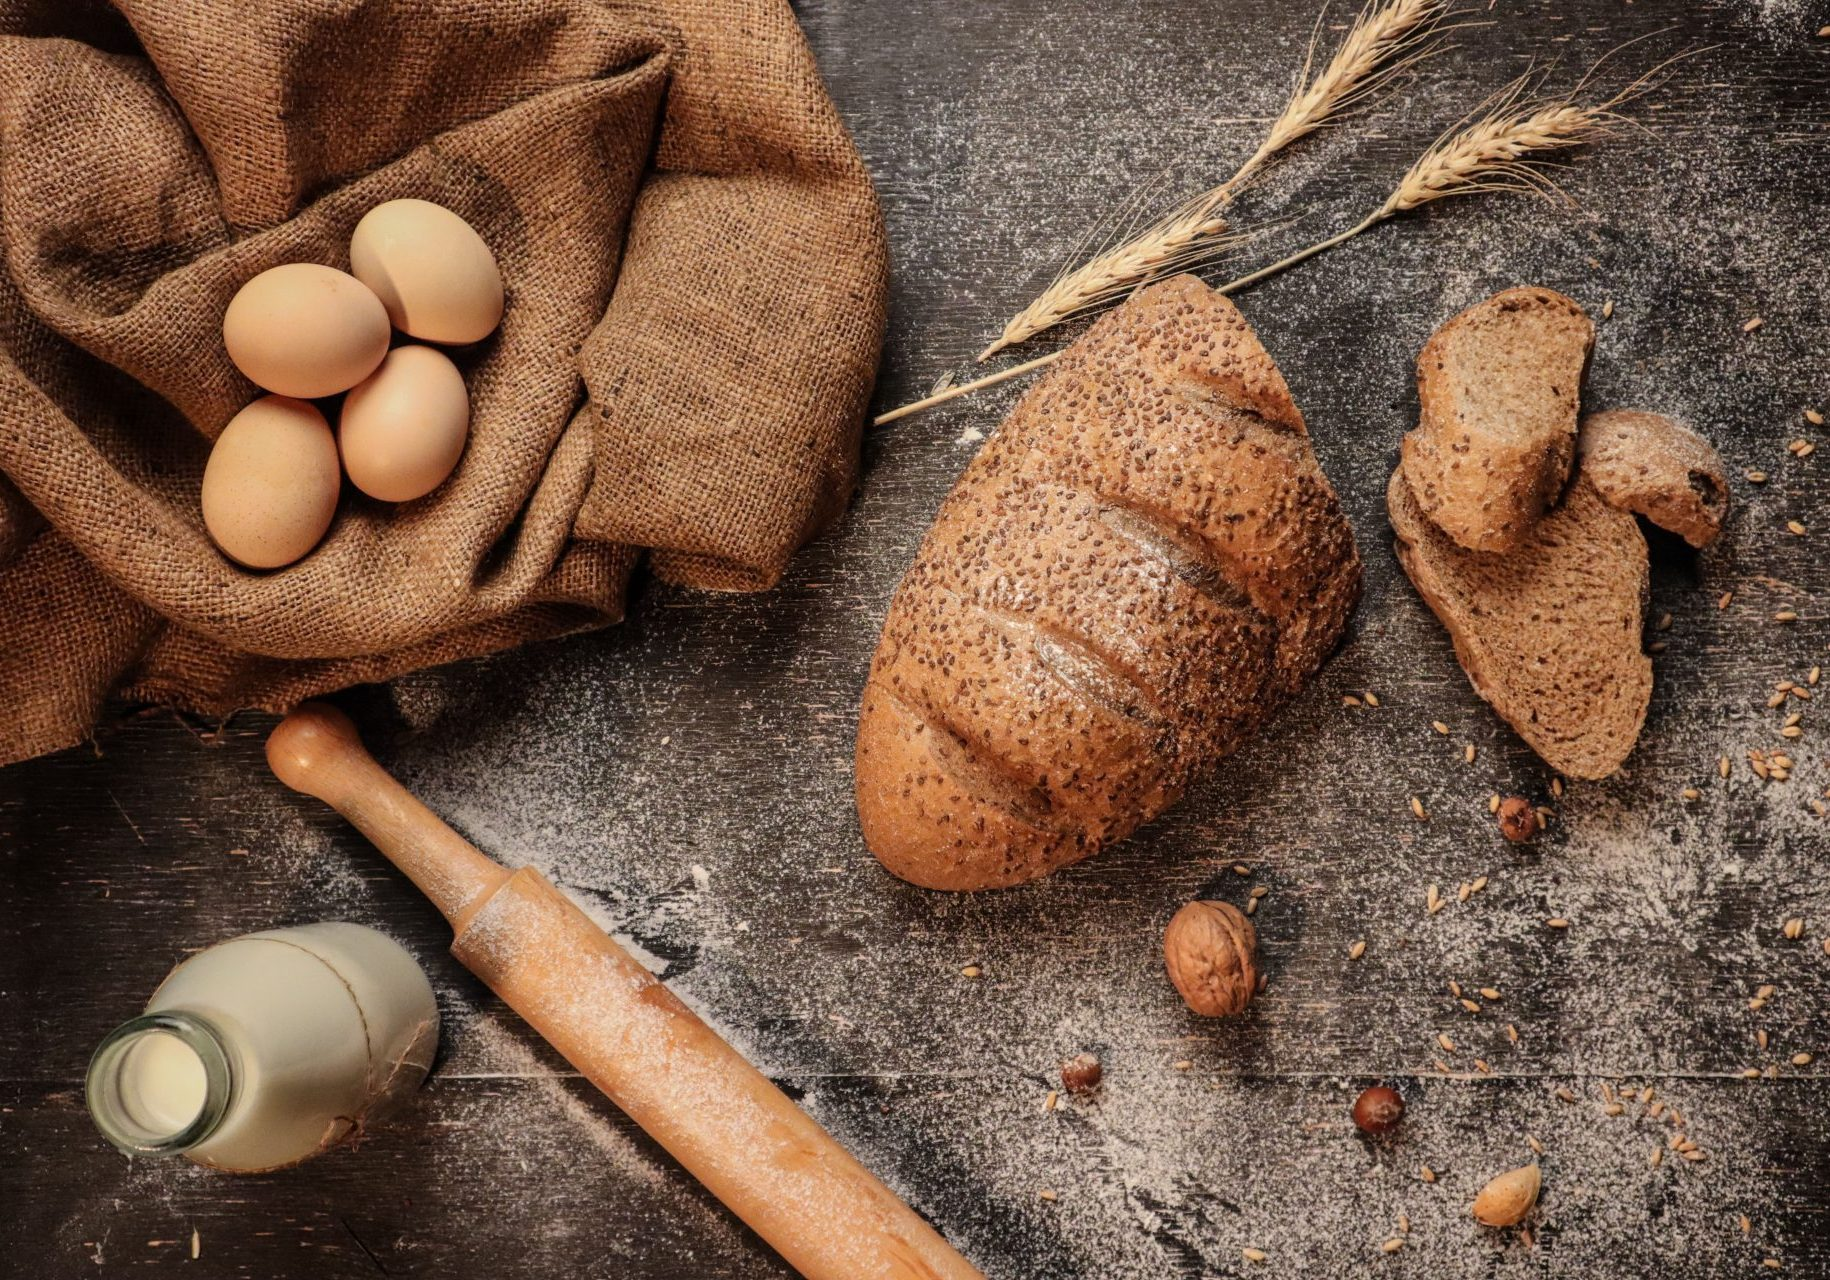 Scelta Inside baking Applications Bread and several fresh ingredients for baking